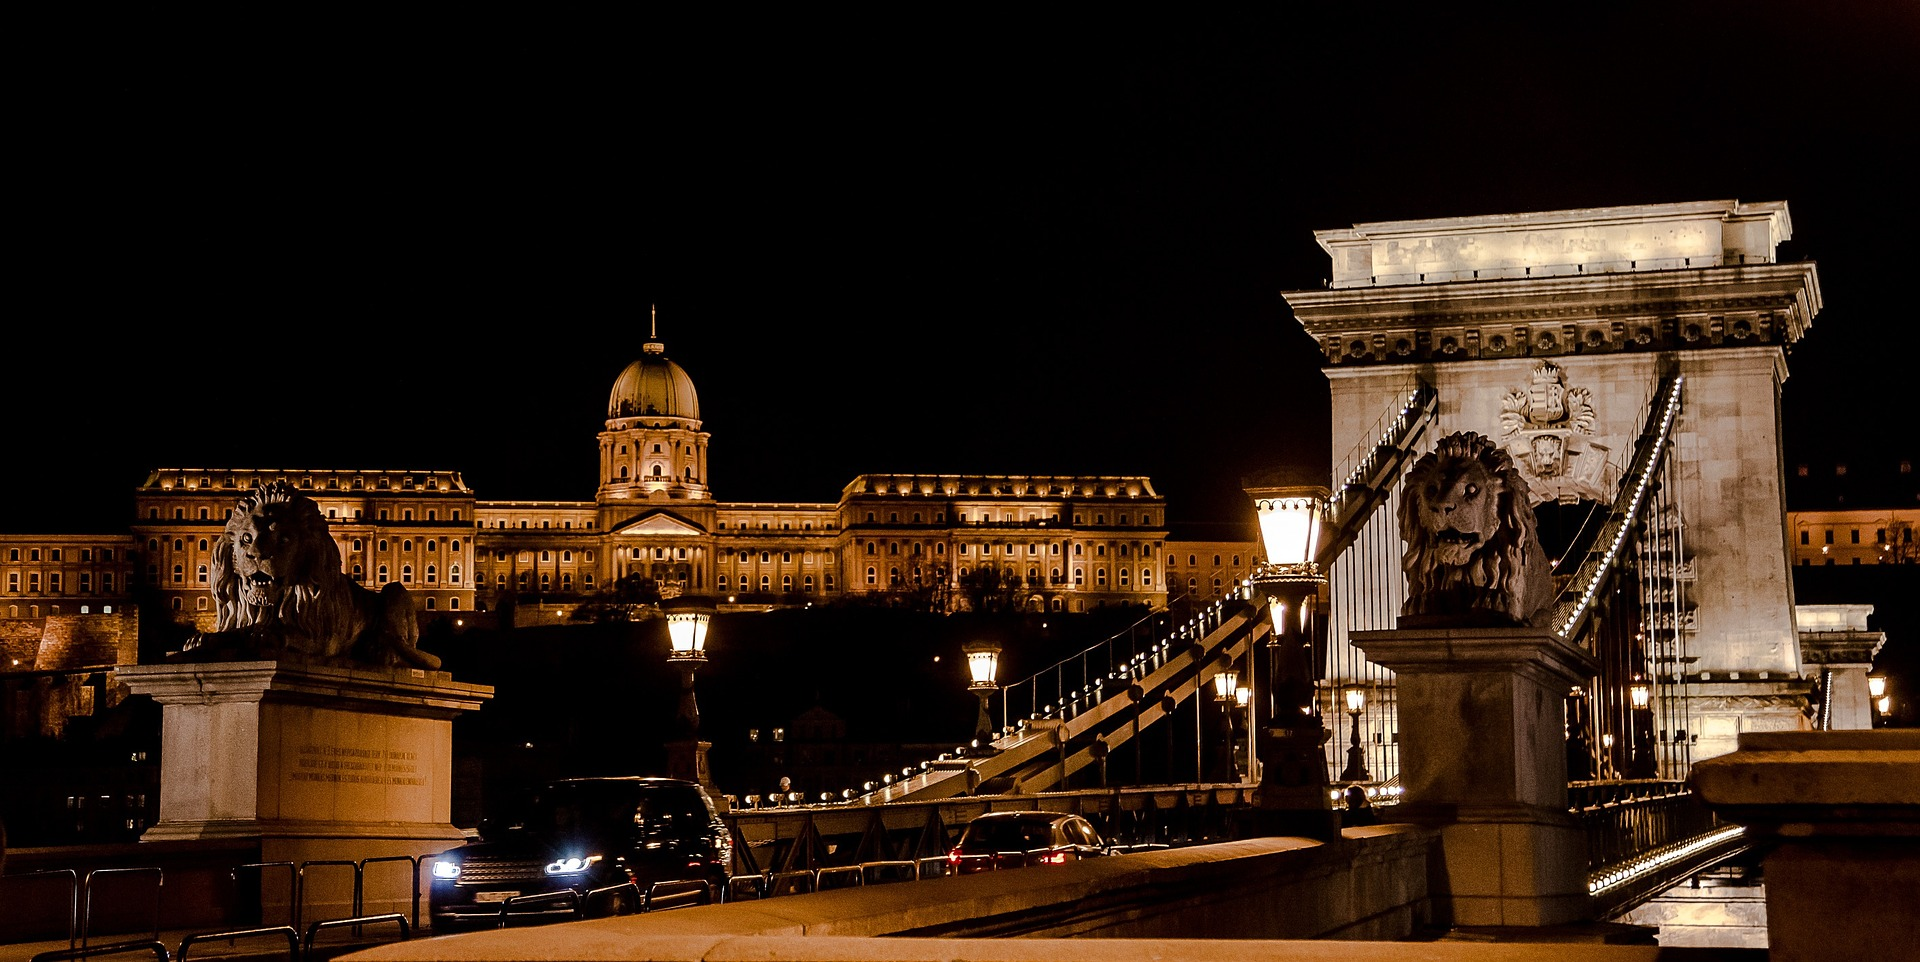 Weekend in Budapest: The Chain Bridge